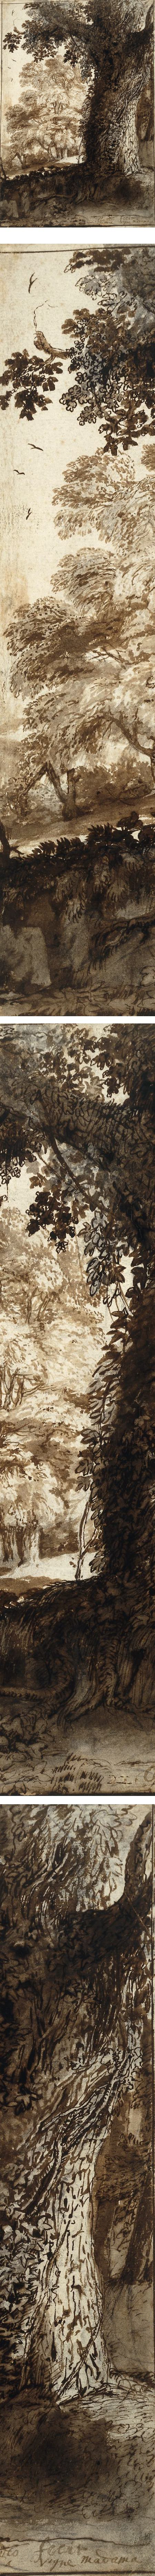 Study of an Oak Tree, Claude Lorrai